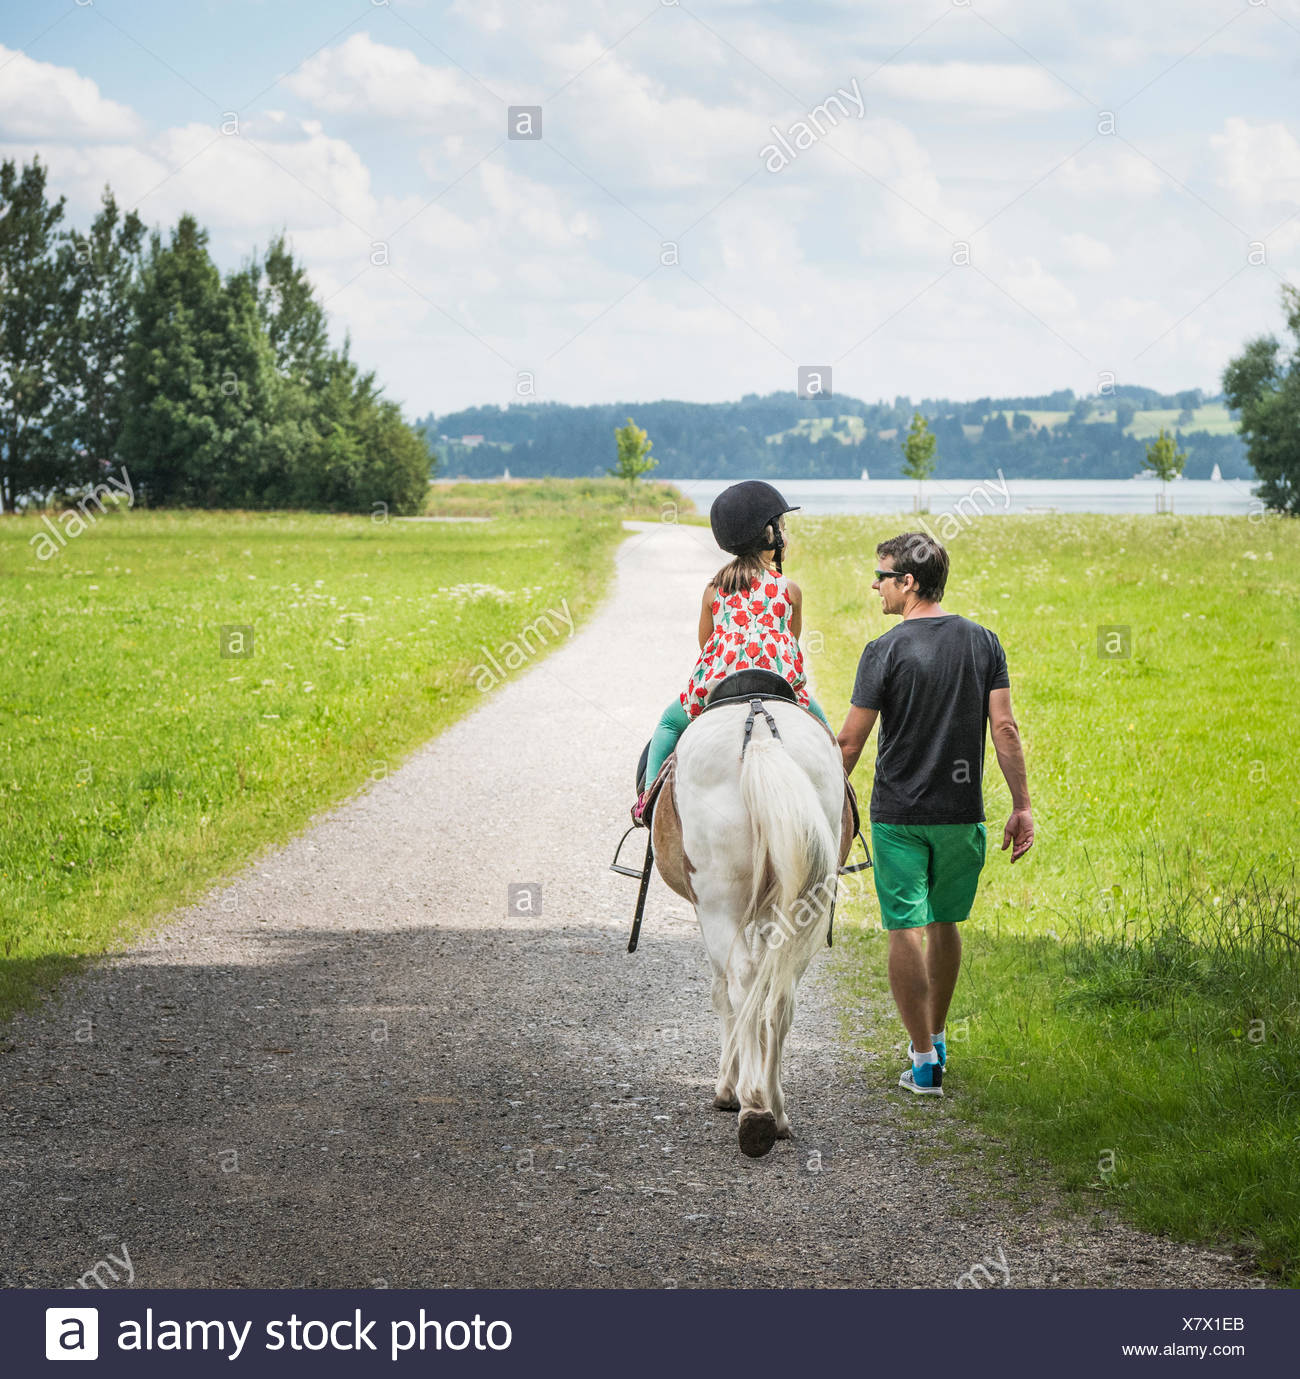 Rear view of father guiding daughter riding horse, Fuessen, Bavaria, Germany Stock Photo